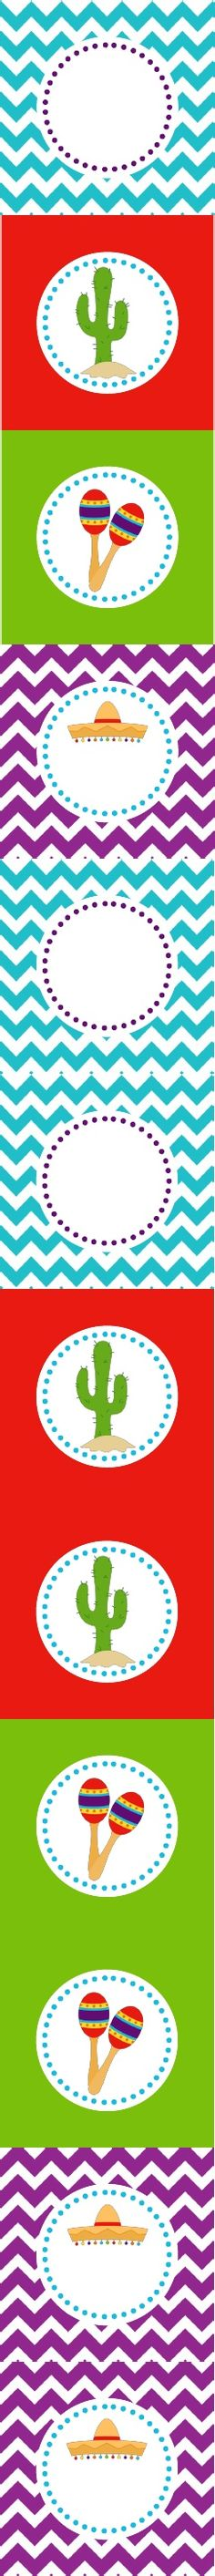 Cinco de Mayo Printables | The Twinery